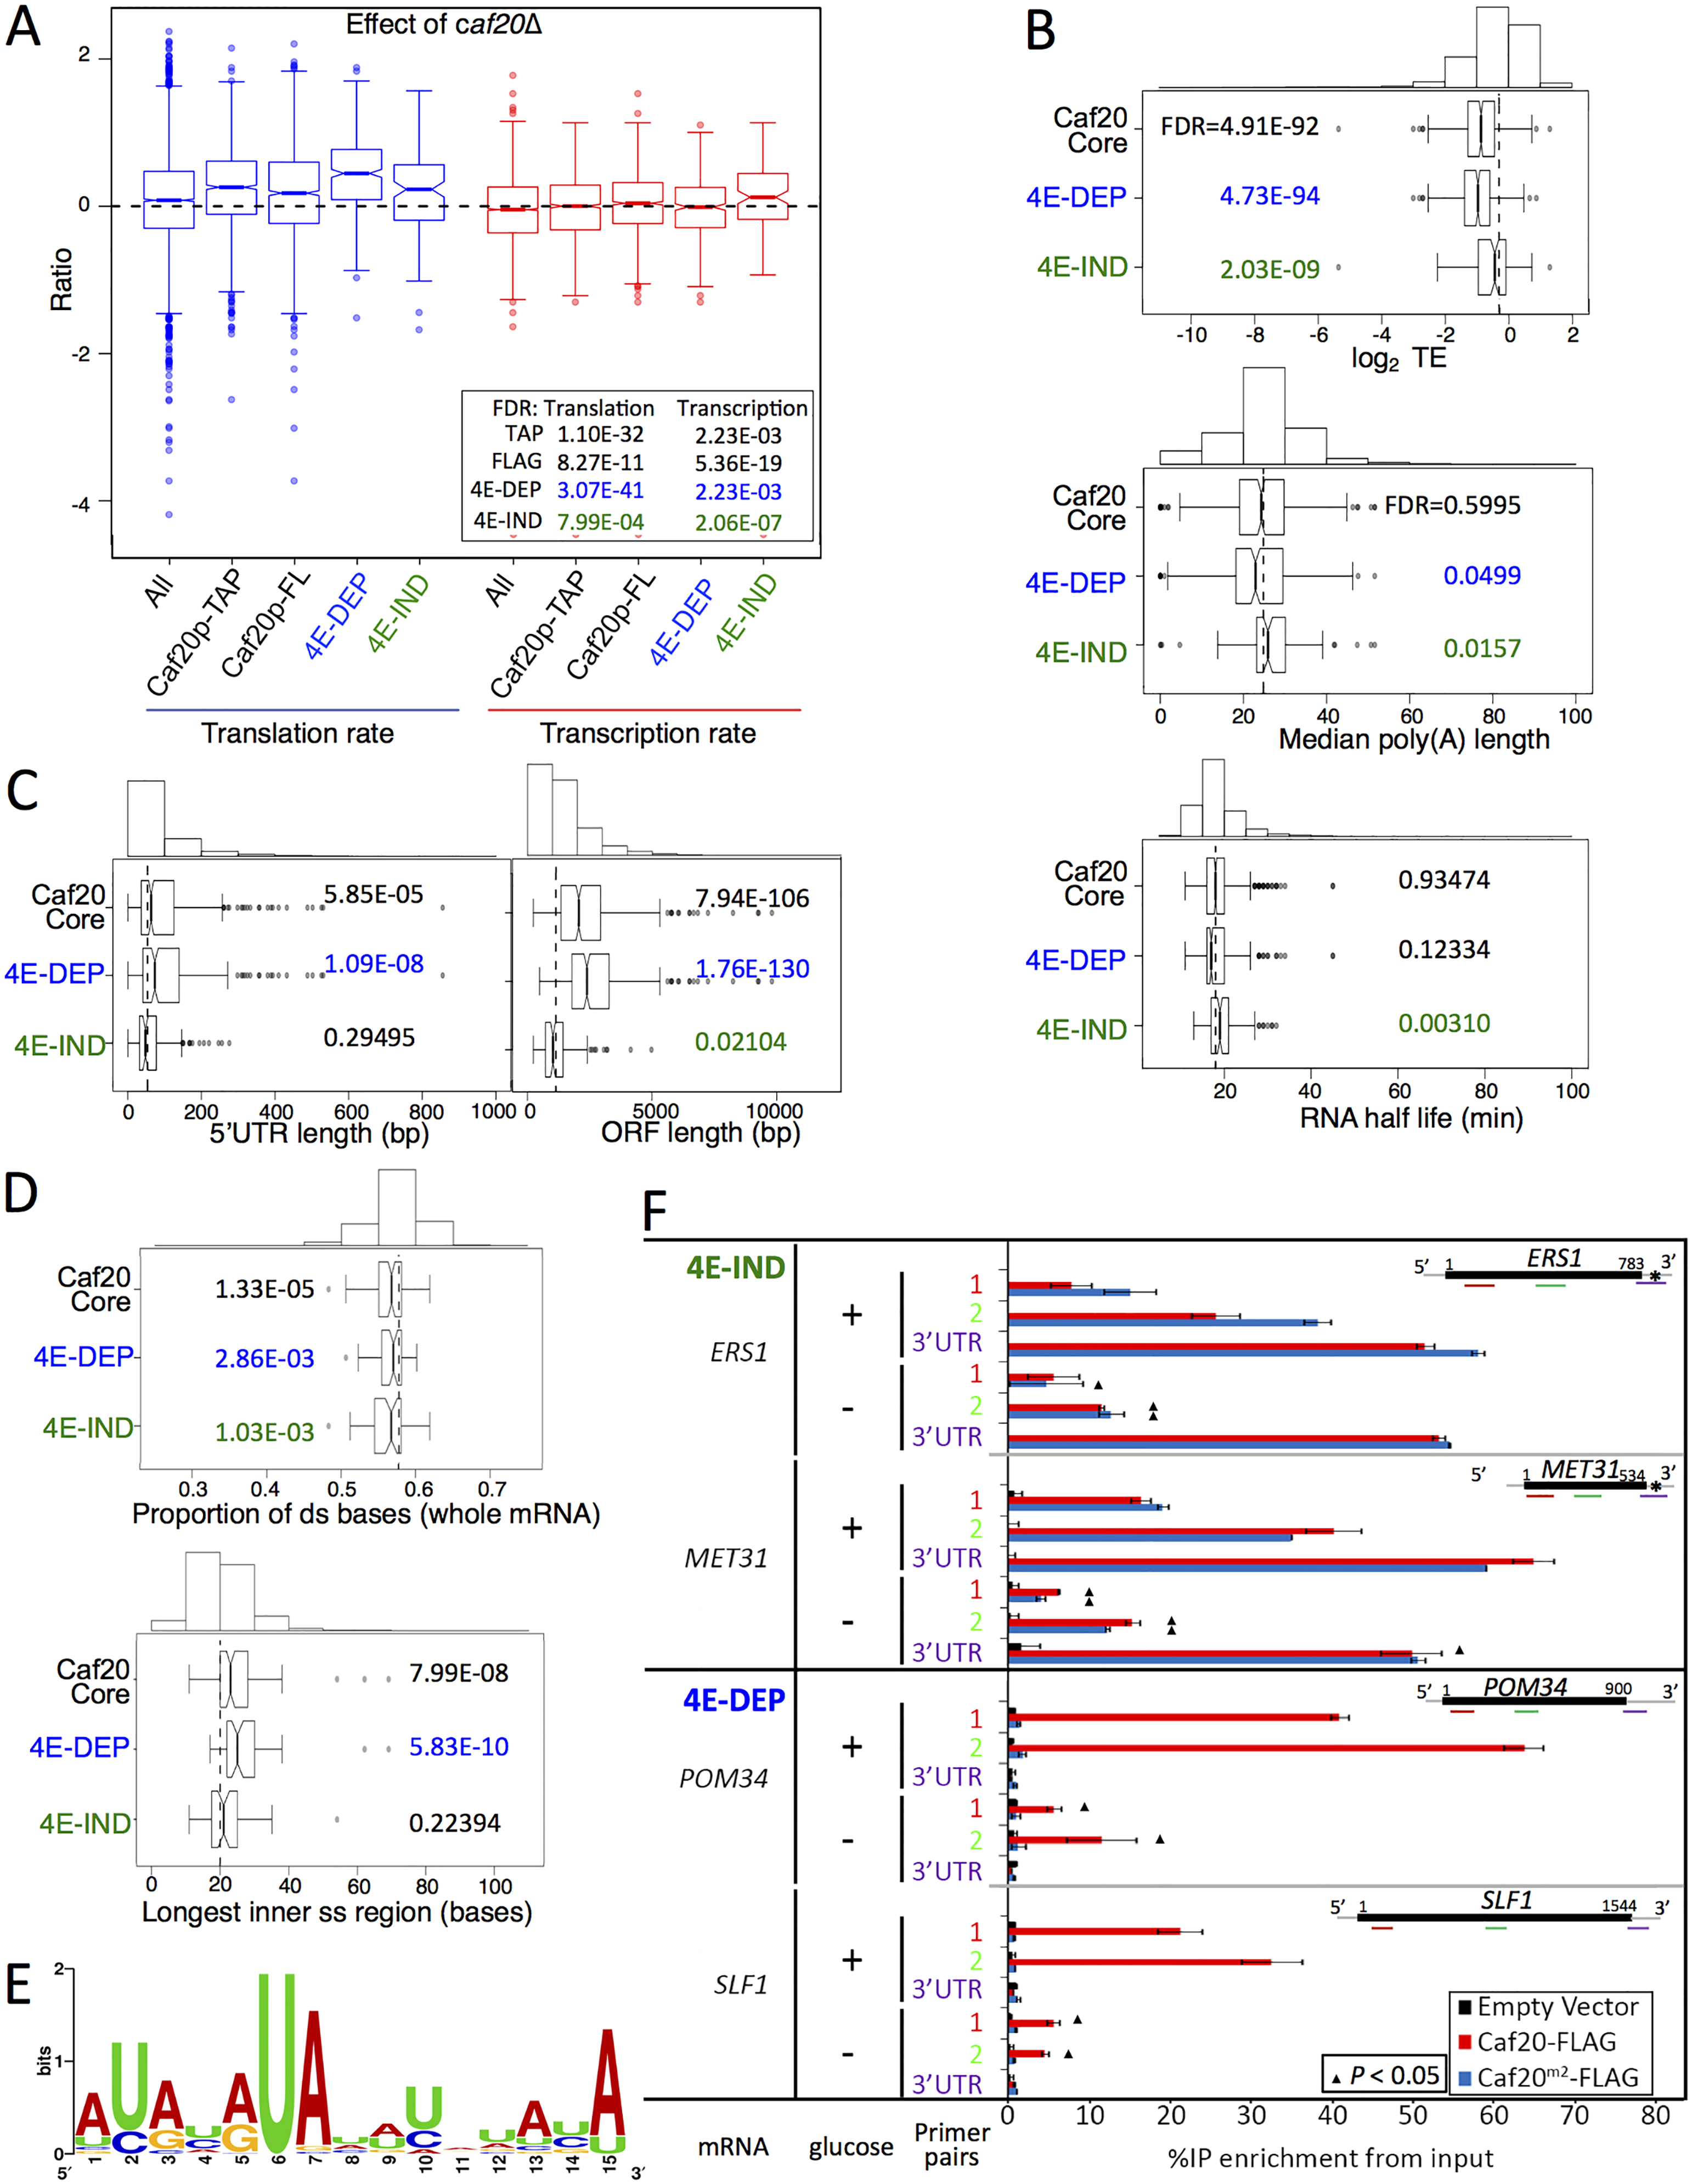 Features of Caf20p 4E-DEP and 4E-IND core bound mRNAs.